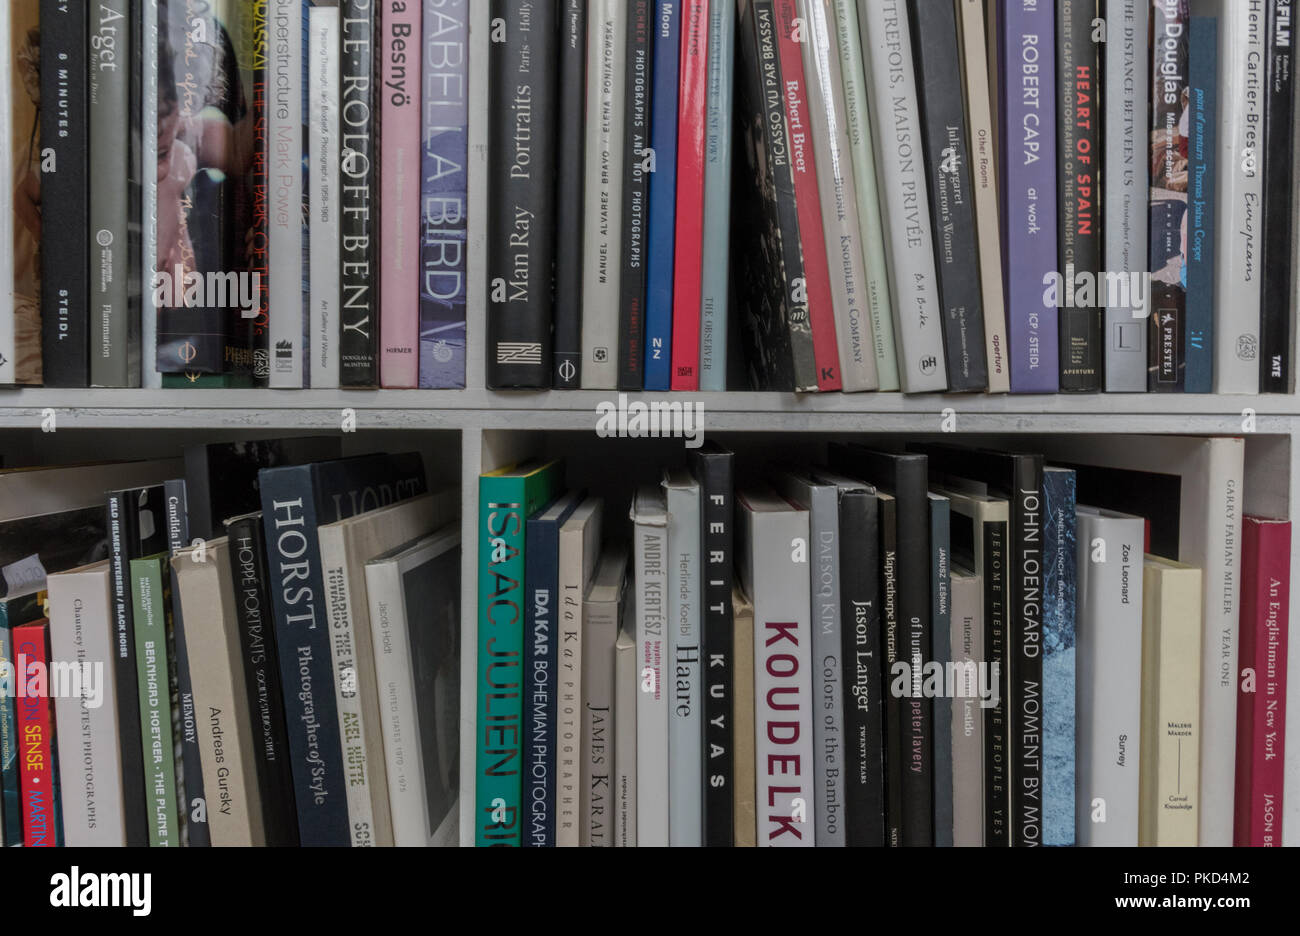 a selection of books on art and photography in a library on a bookshelf. Stock Photo